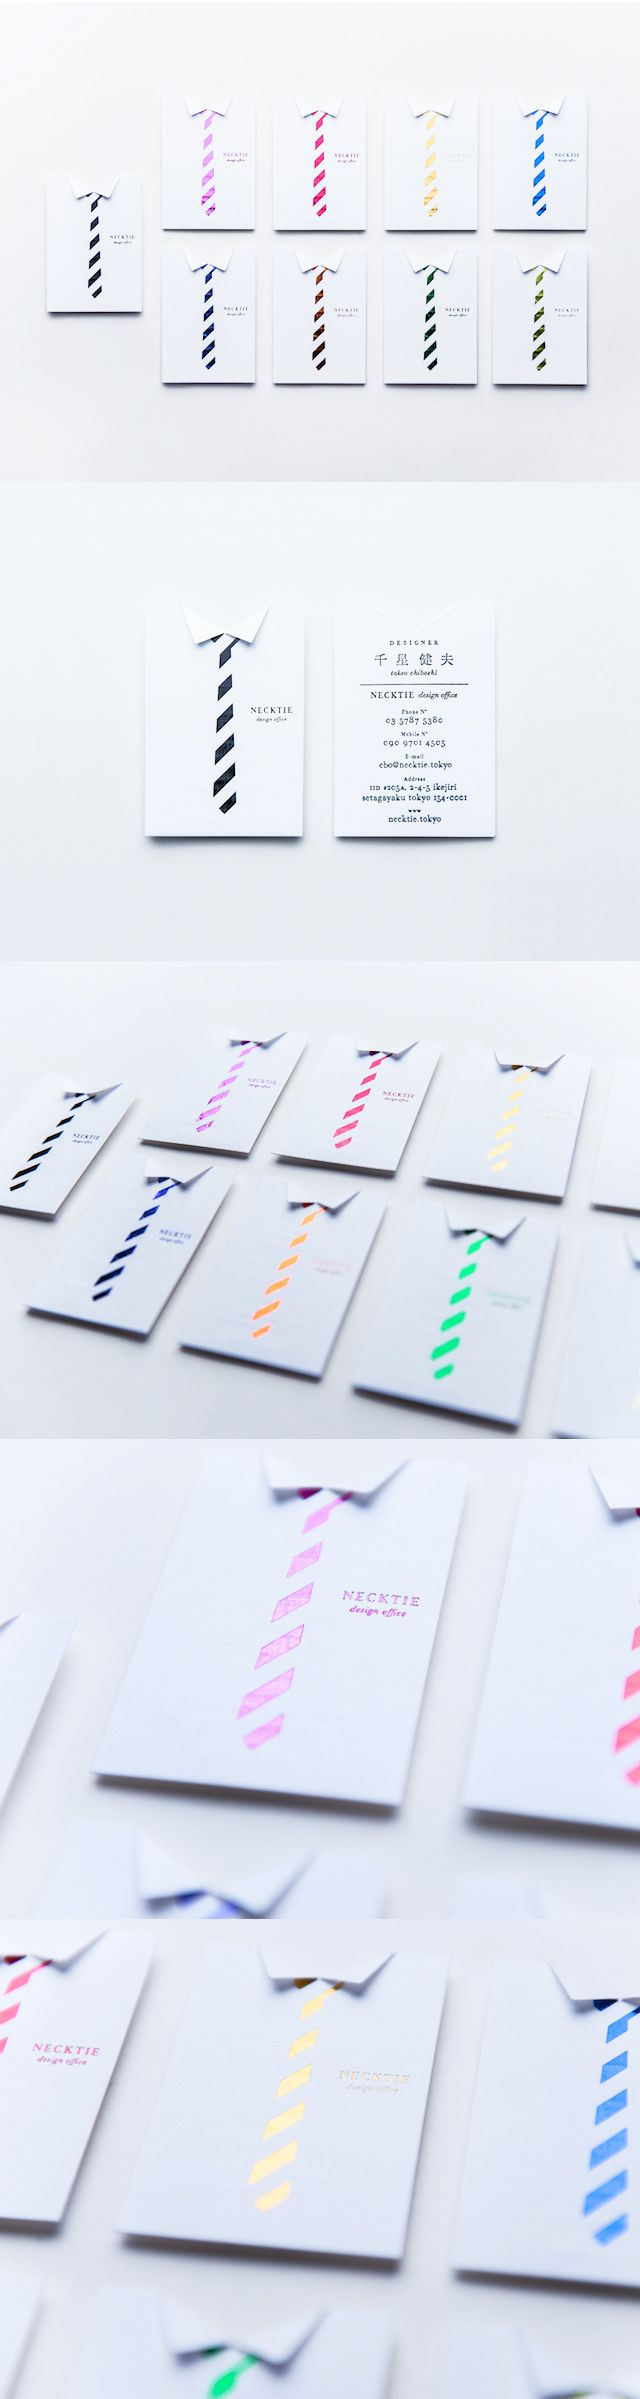 Necktie Business Cards - Want to have your own cool business card design? Go to http://styleresumes.com! Like our FB page https://www.facebook.com/pages/Style-Resumes/395730460525201 and Follow our Twitter https://twitter.com/StyleResumes1 for more #ResumeTips and inspiration!